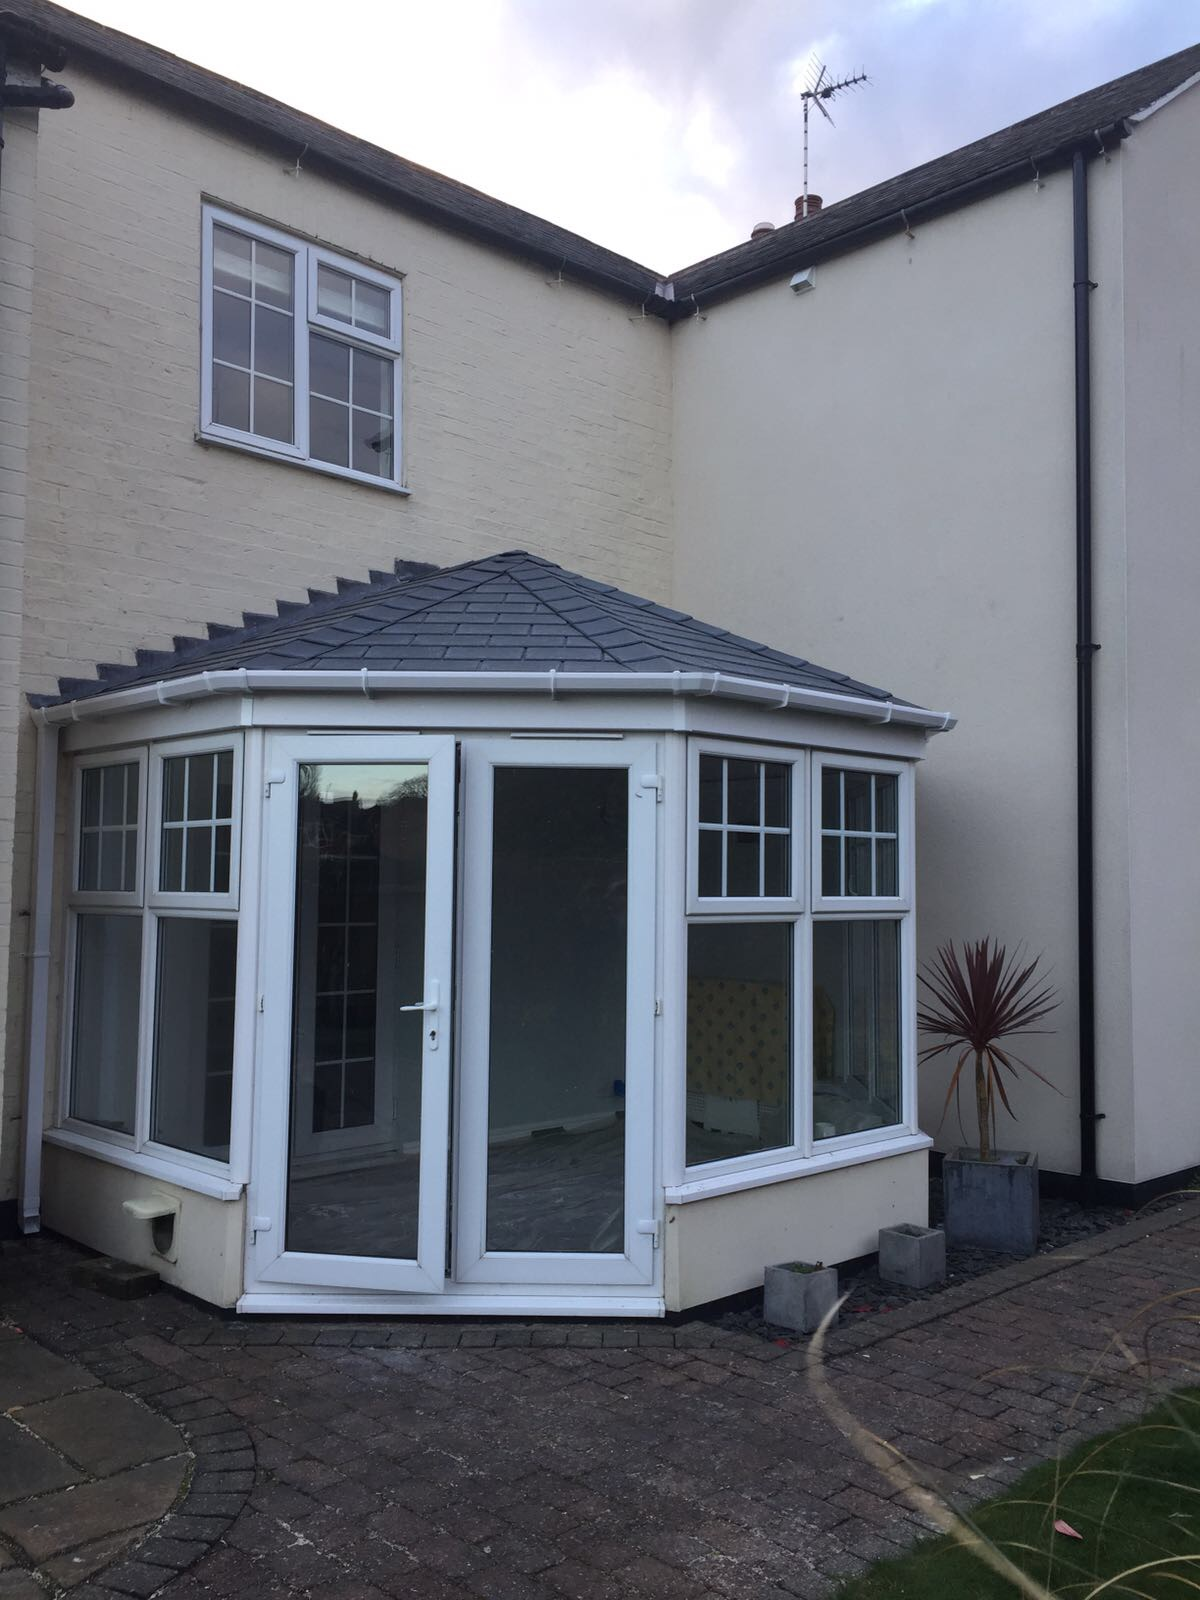 Do I Need Planning Permission To Tile My Conservatory Roof